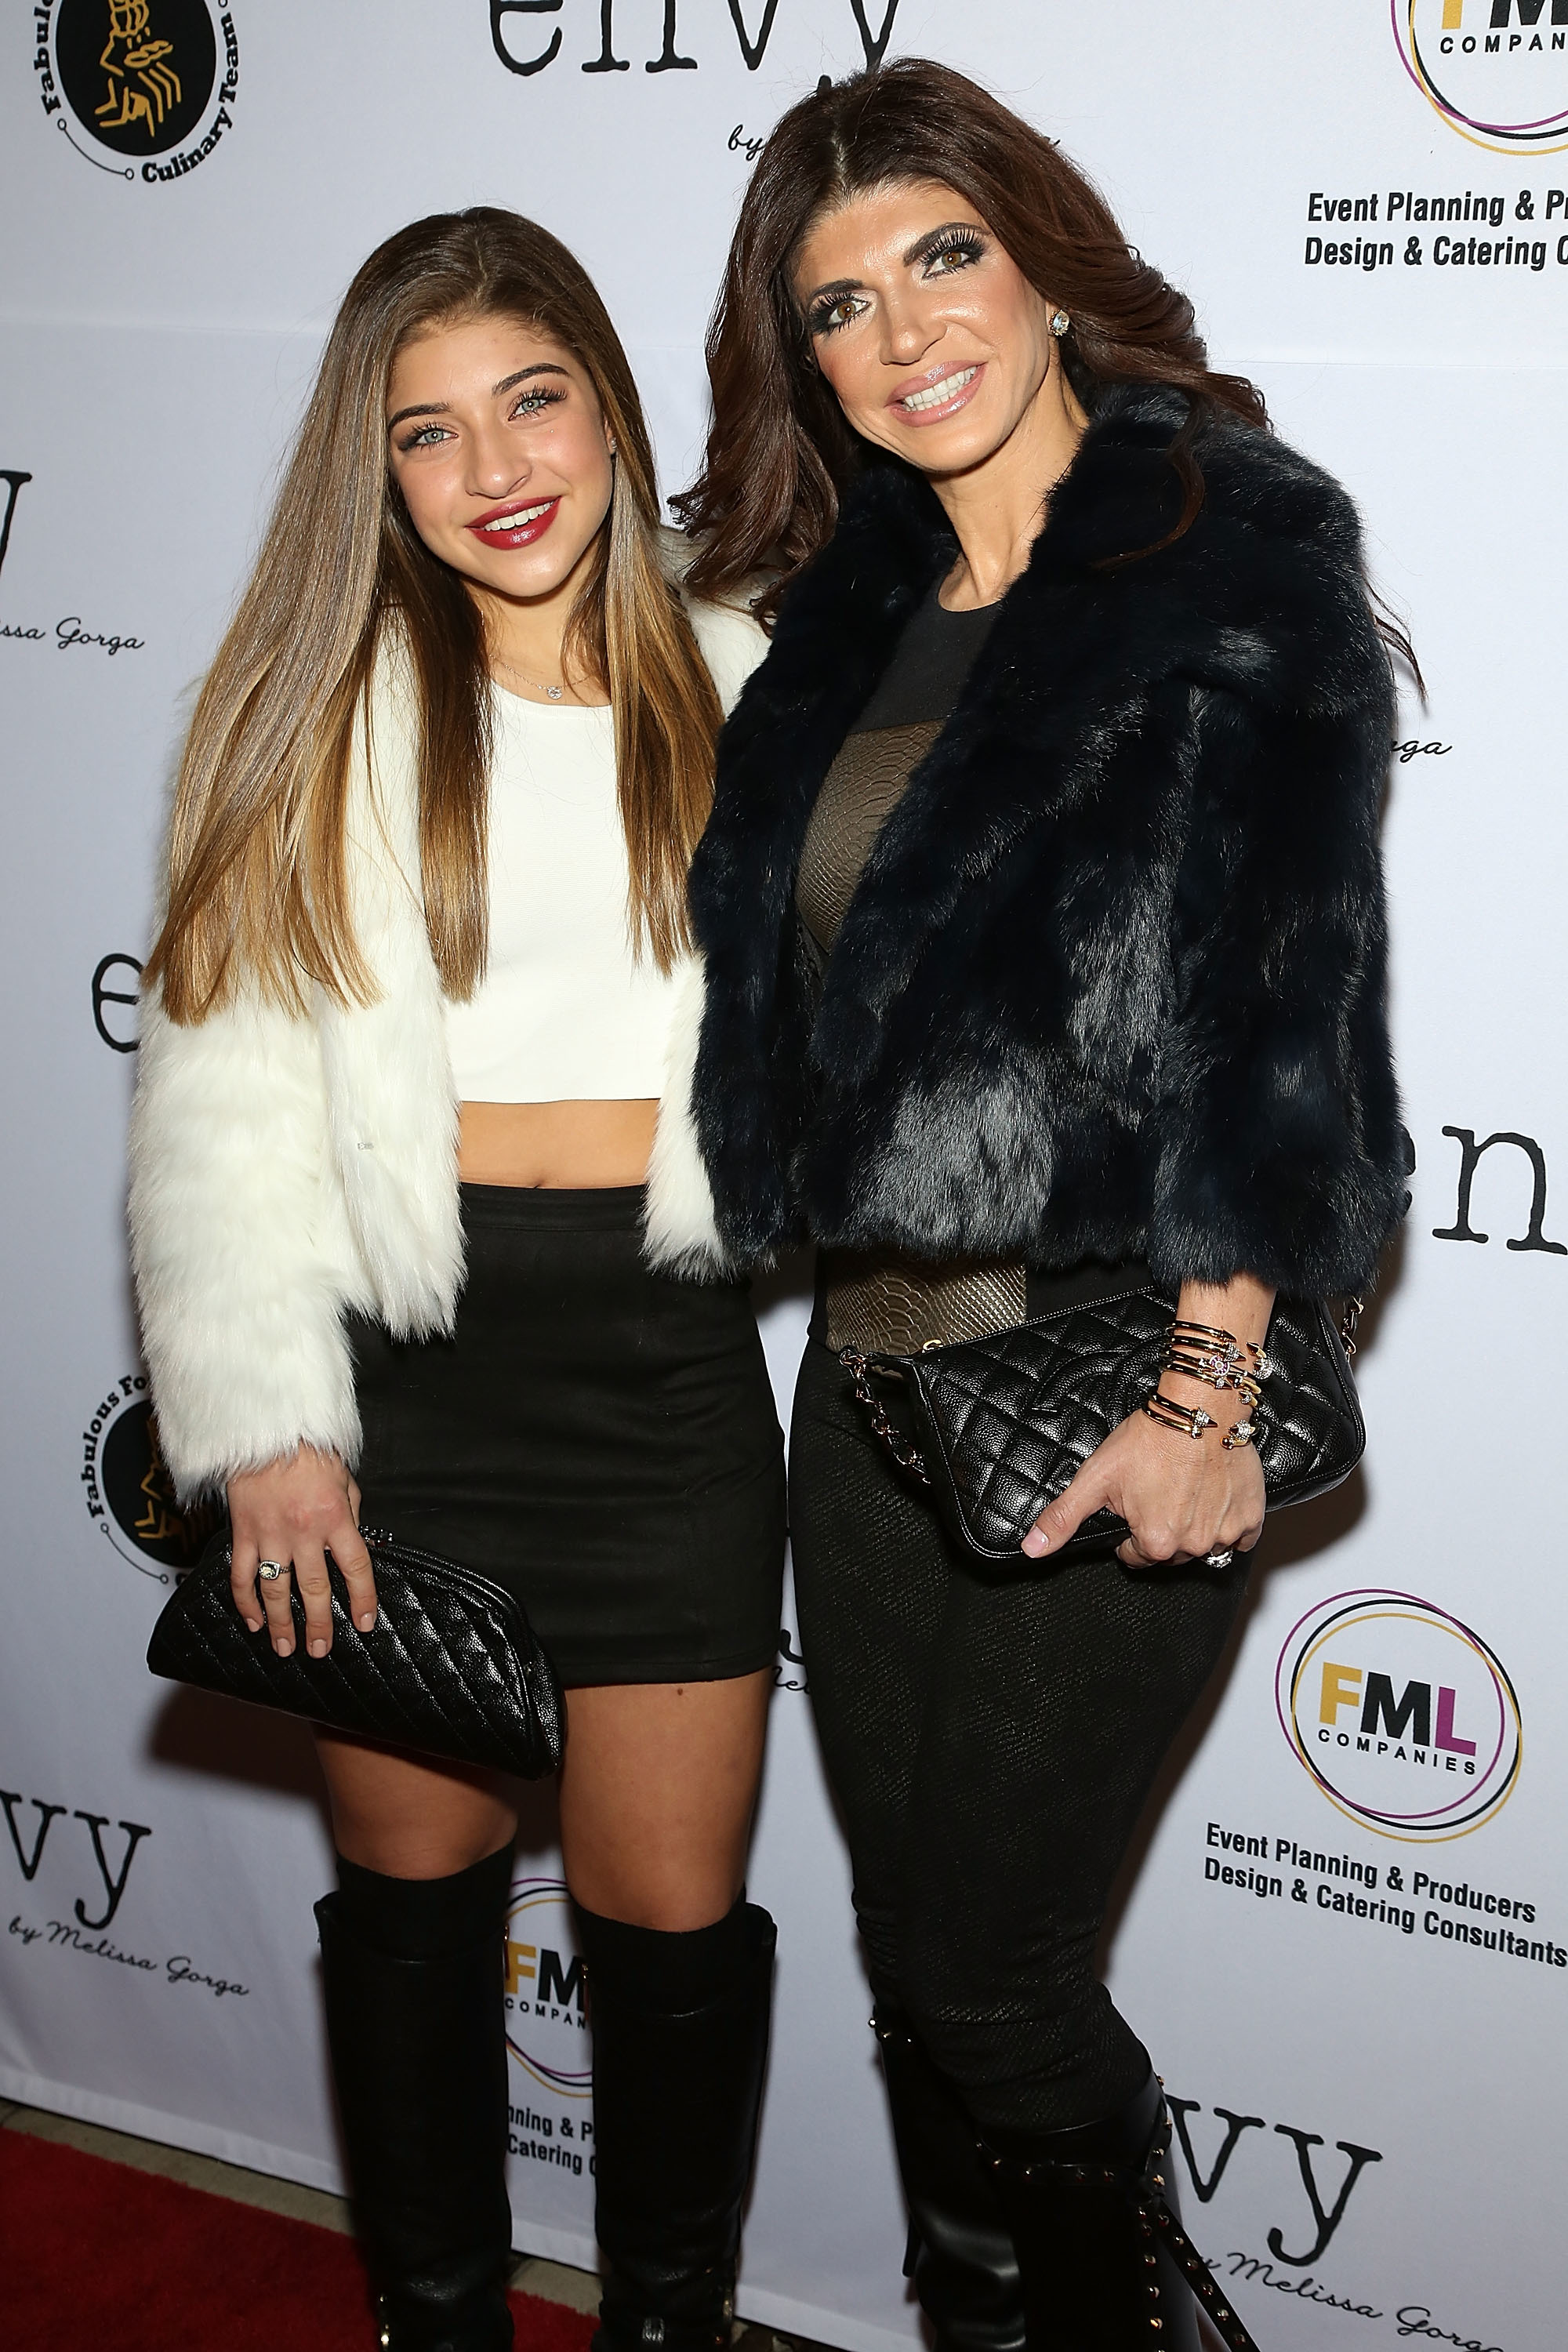 Gia Giudice and Teresa Giudice attend the Grand Opening of envy by Melissa Gorga Boutique in Montclair, New Jersey on Jan. 14, 2016